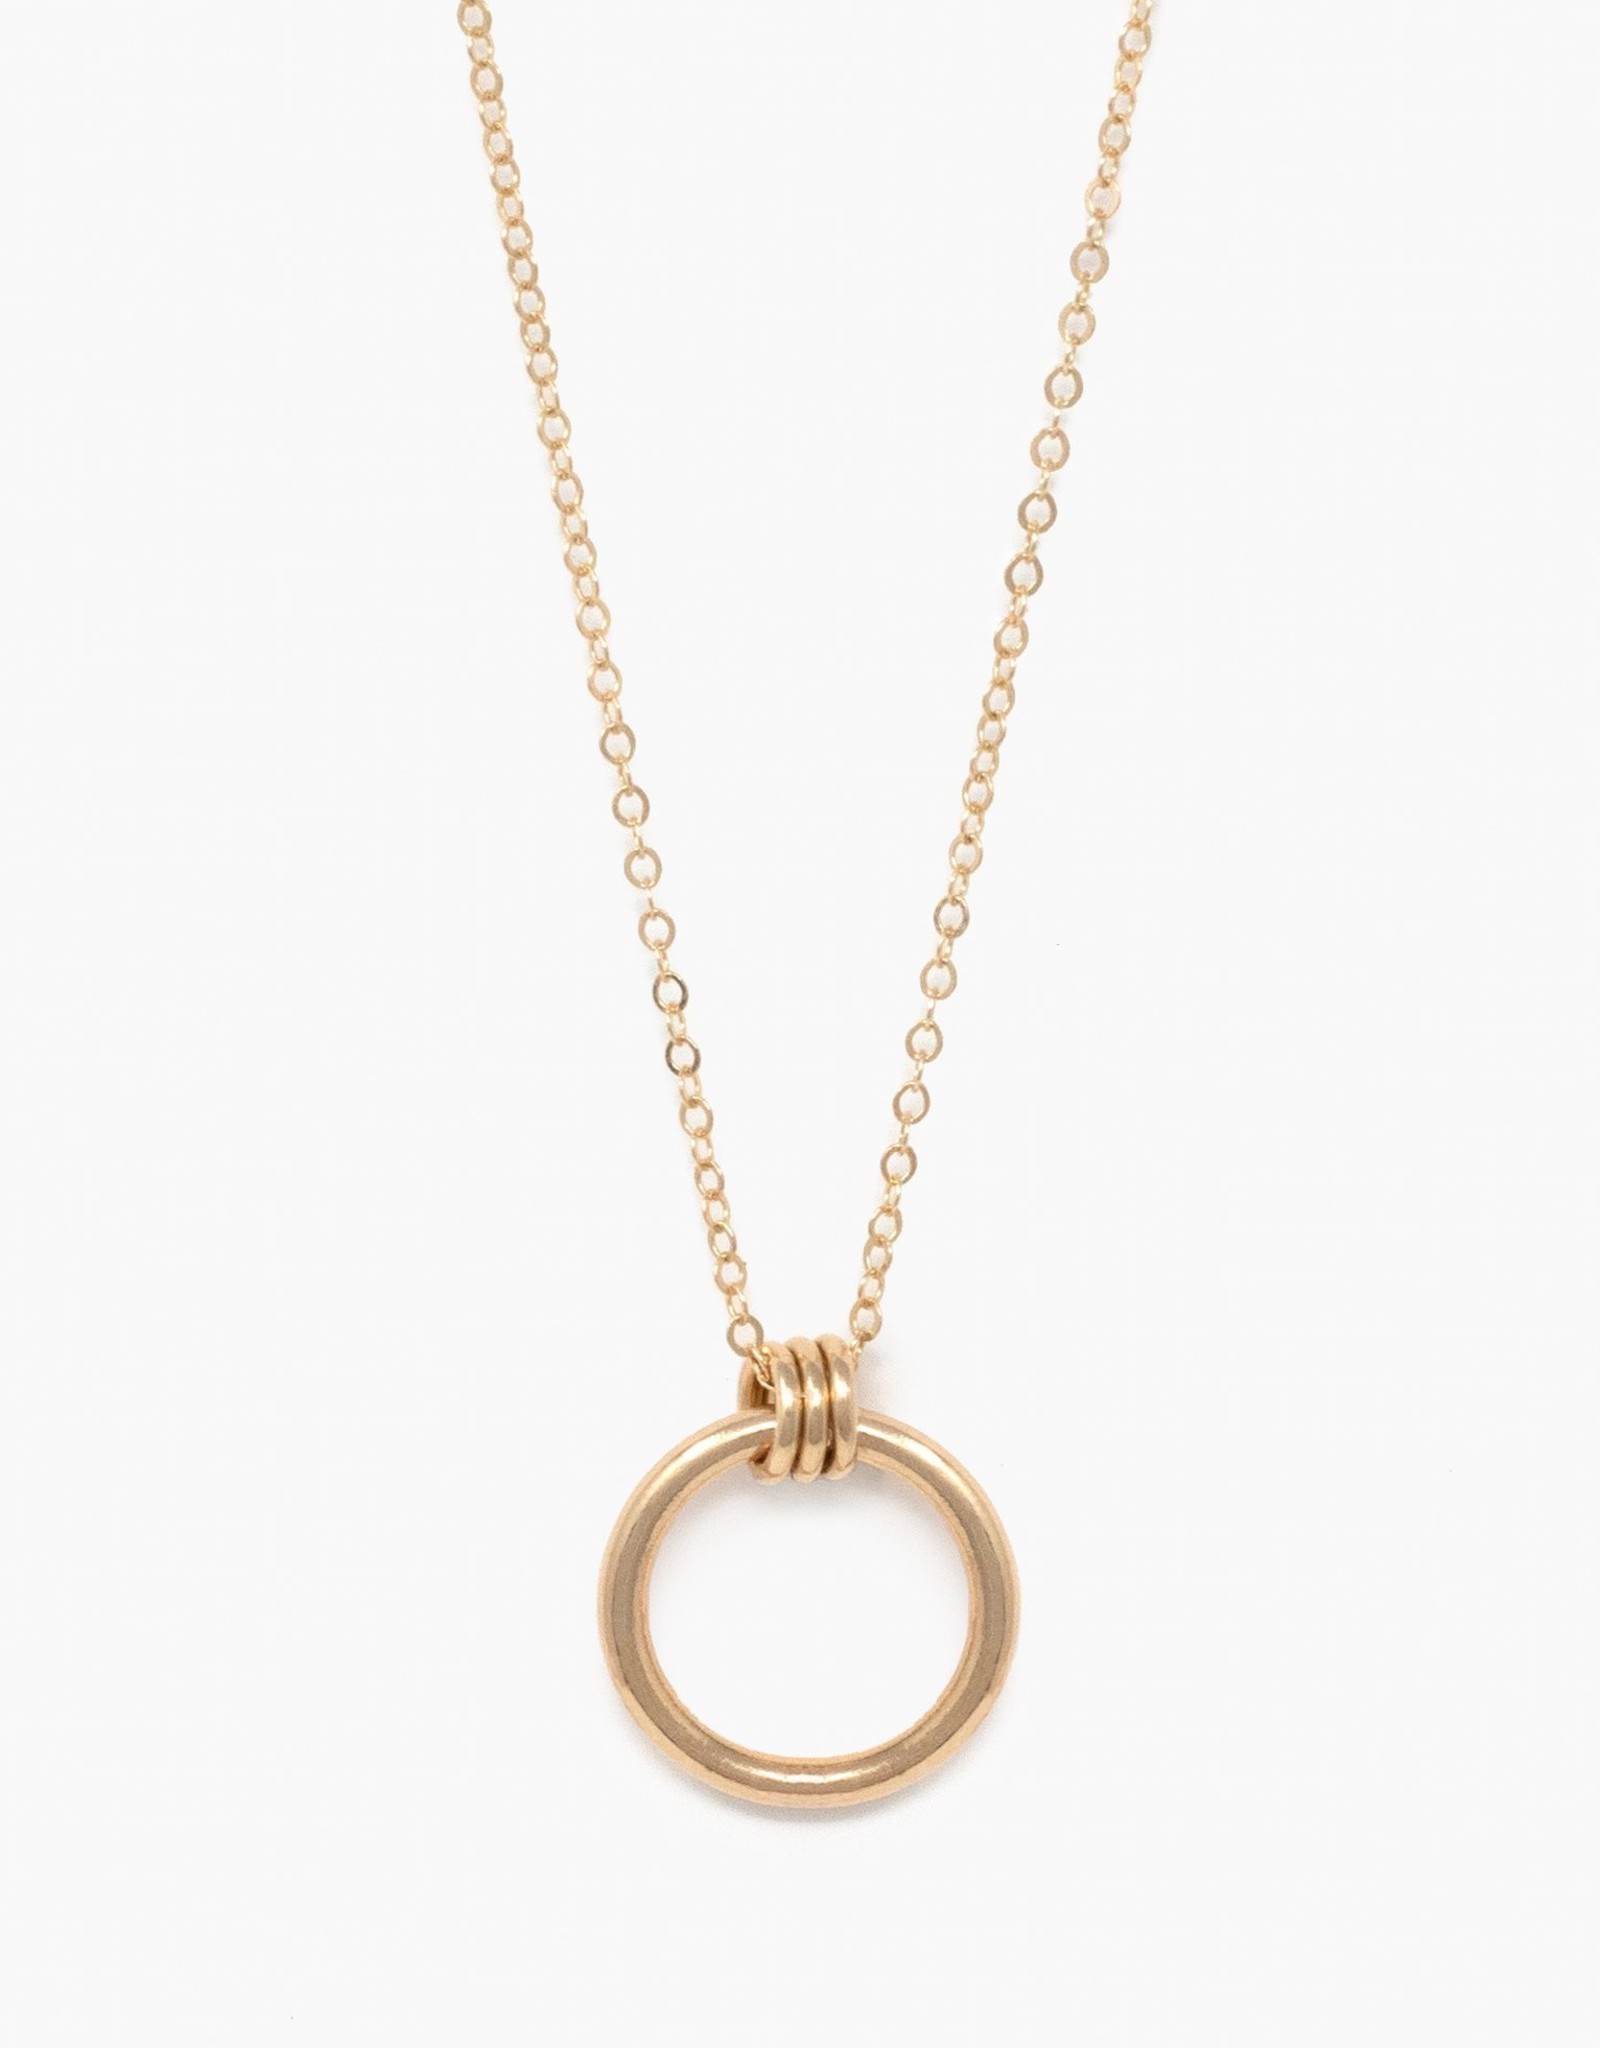 Able Celine Necklace